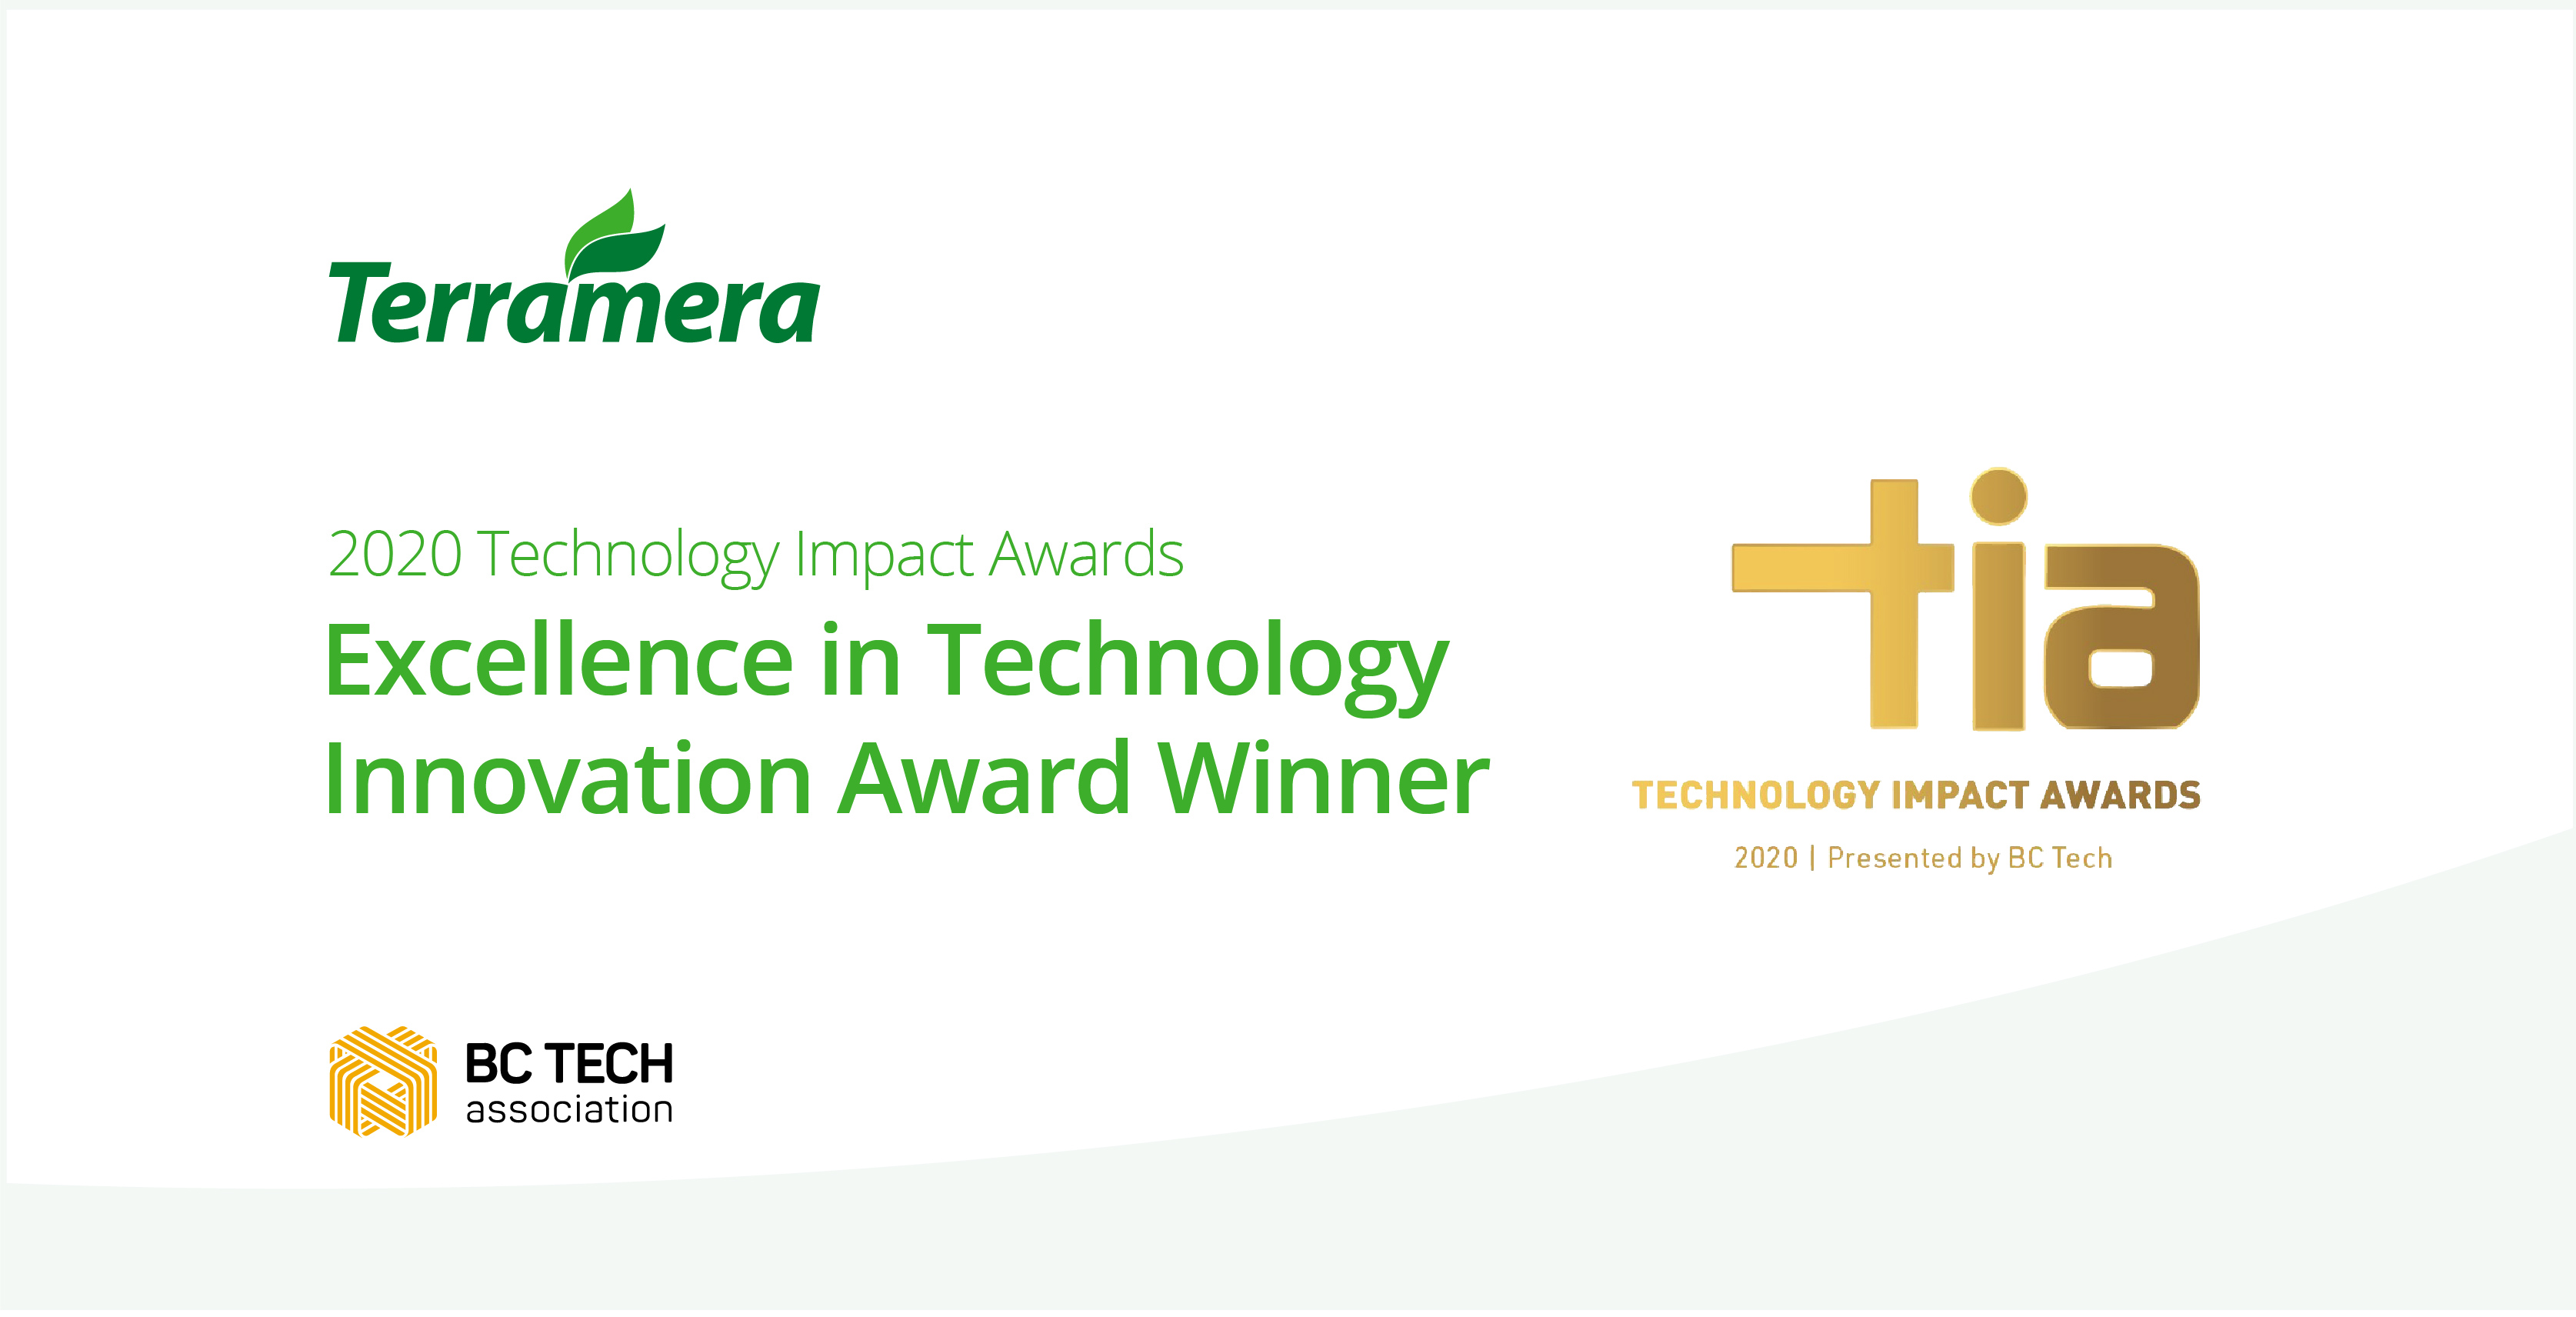 Terramera was announced the winner of the Excellence in Technology Innovation award at the 2020 Technology Impact Awards (TIAs).